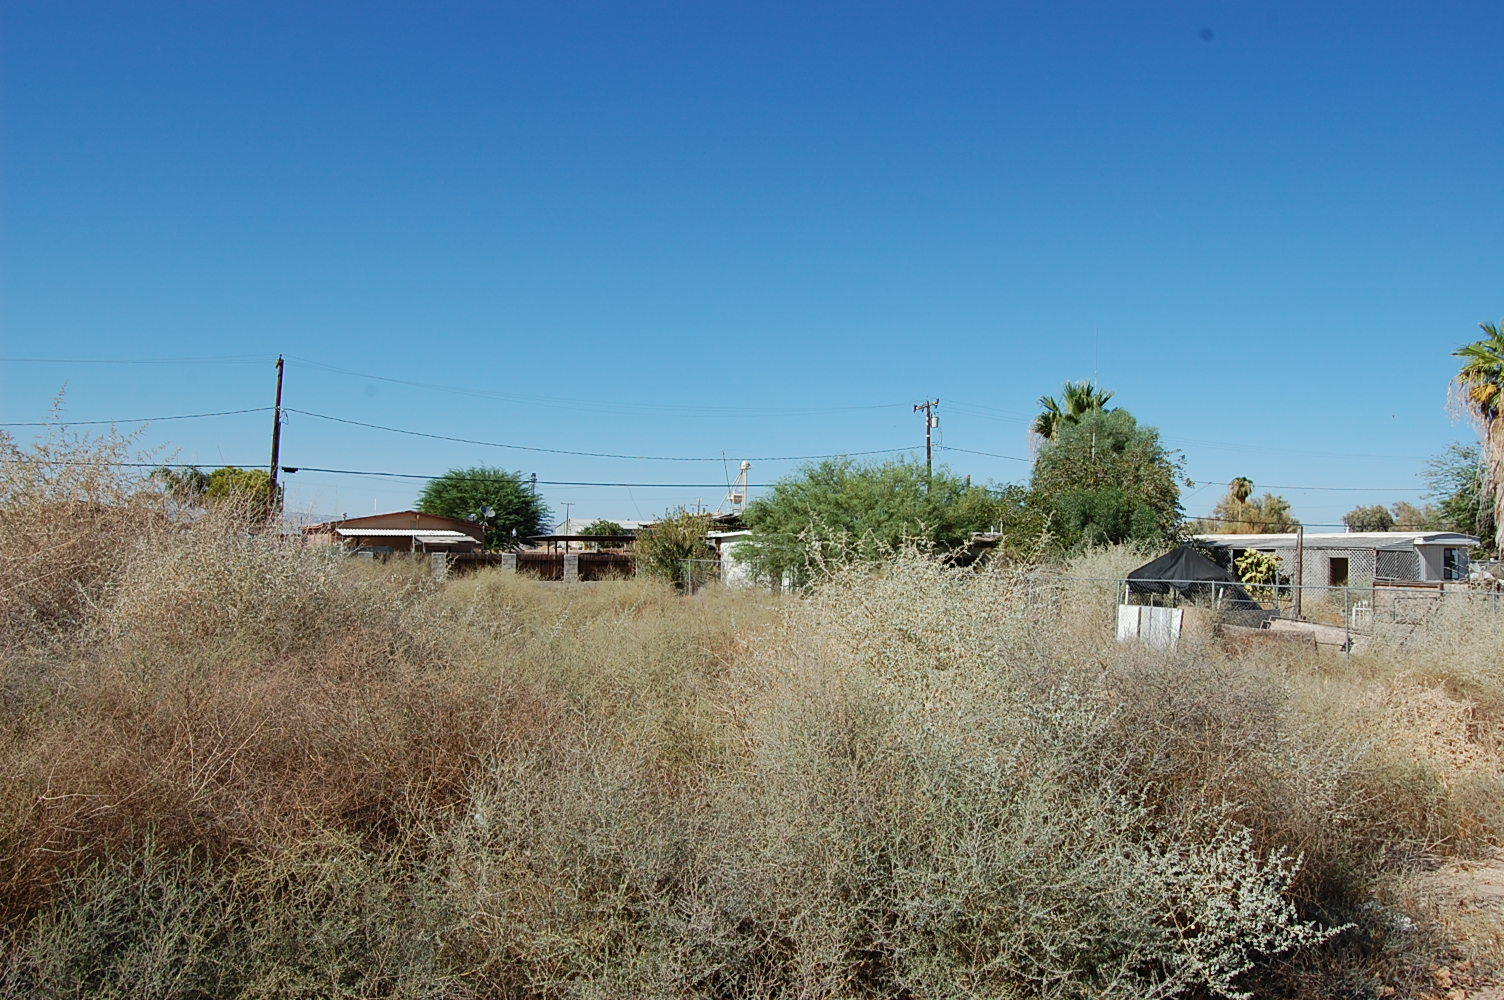 Lot in Small Agricultural Community - Image 3